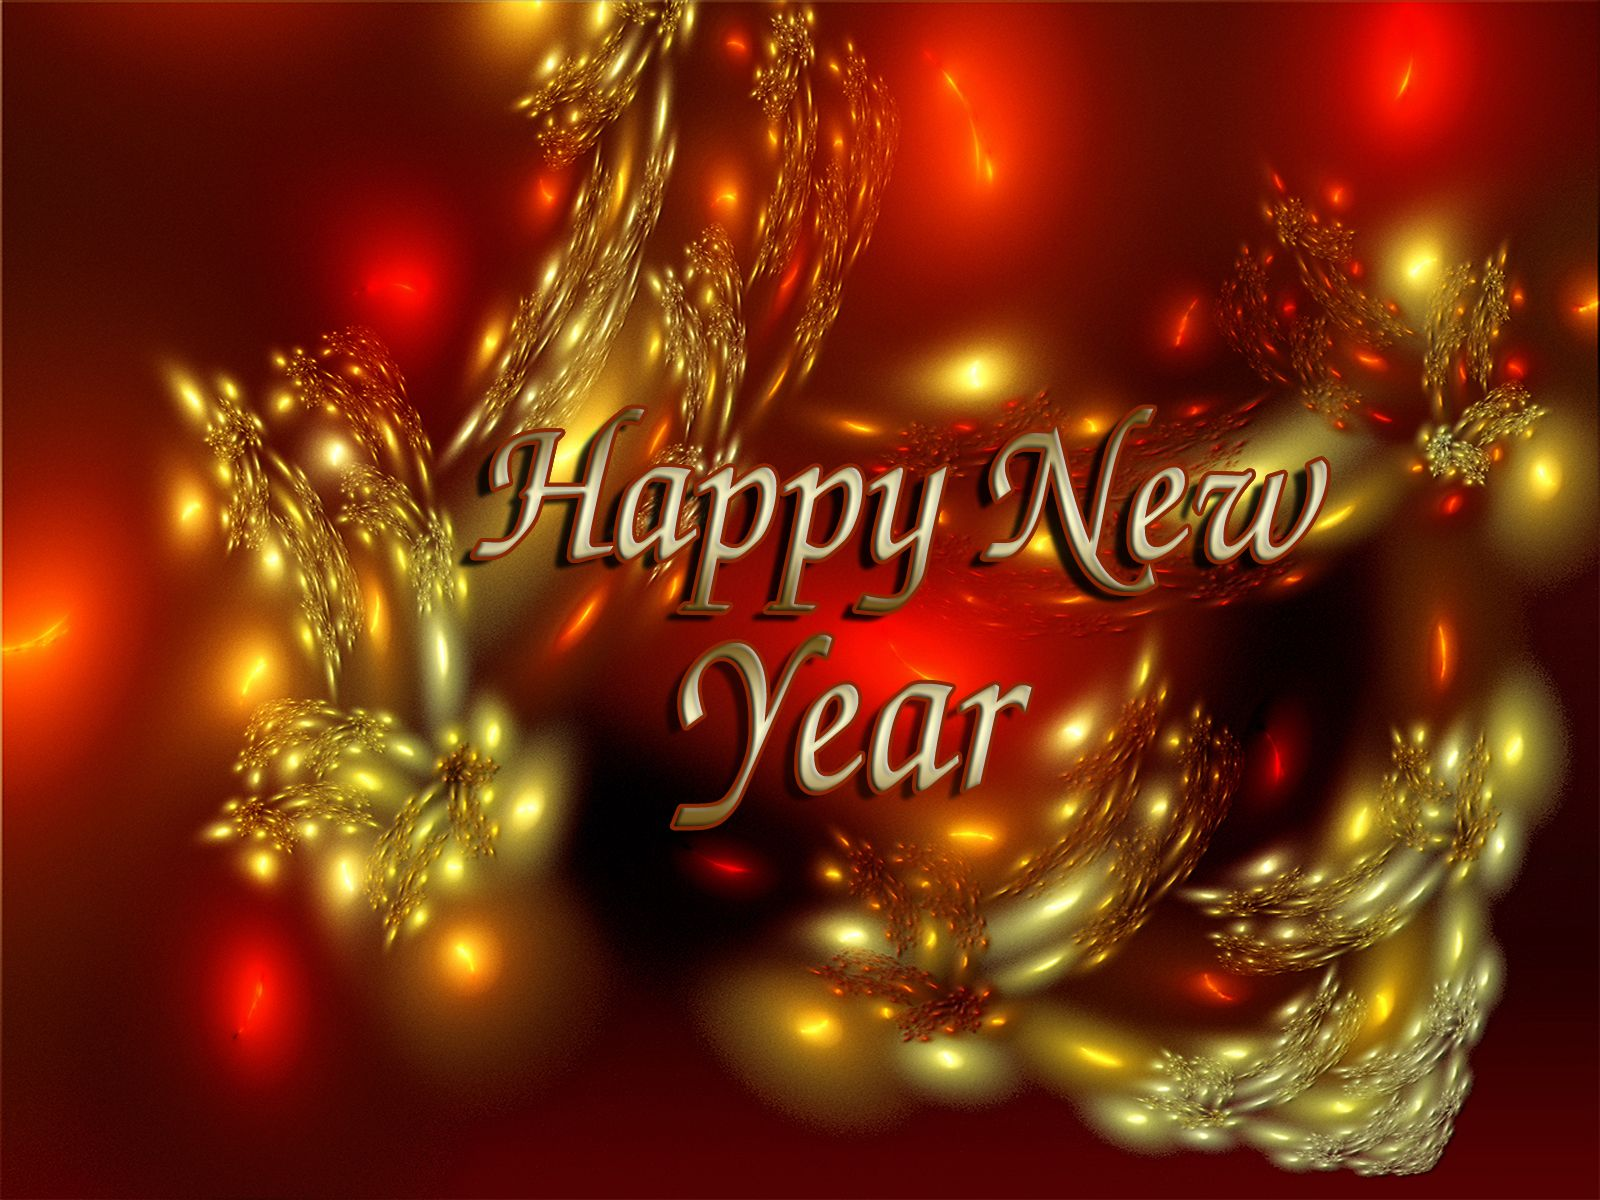 Happy new year may 2015 bring you all good health wipe your happy new year may 2015 bring you all good health wipe your sorrows away kristyandbryce Gallery